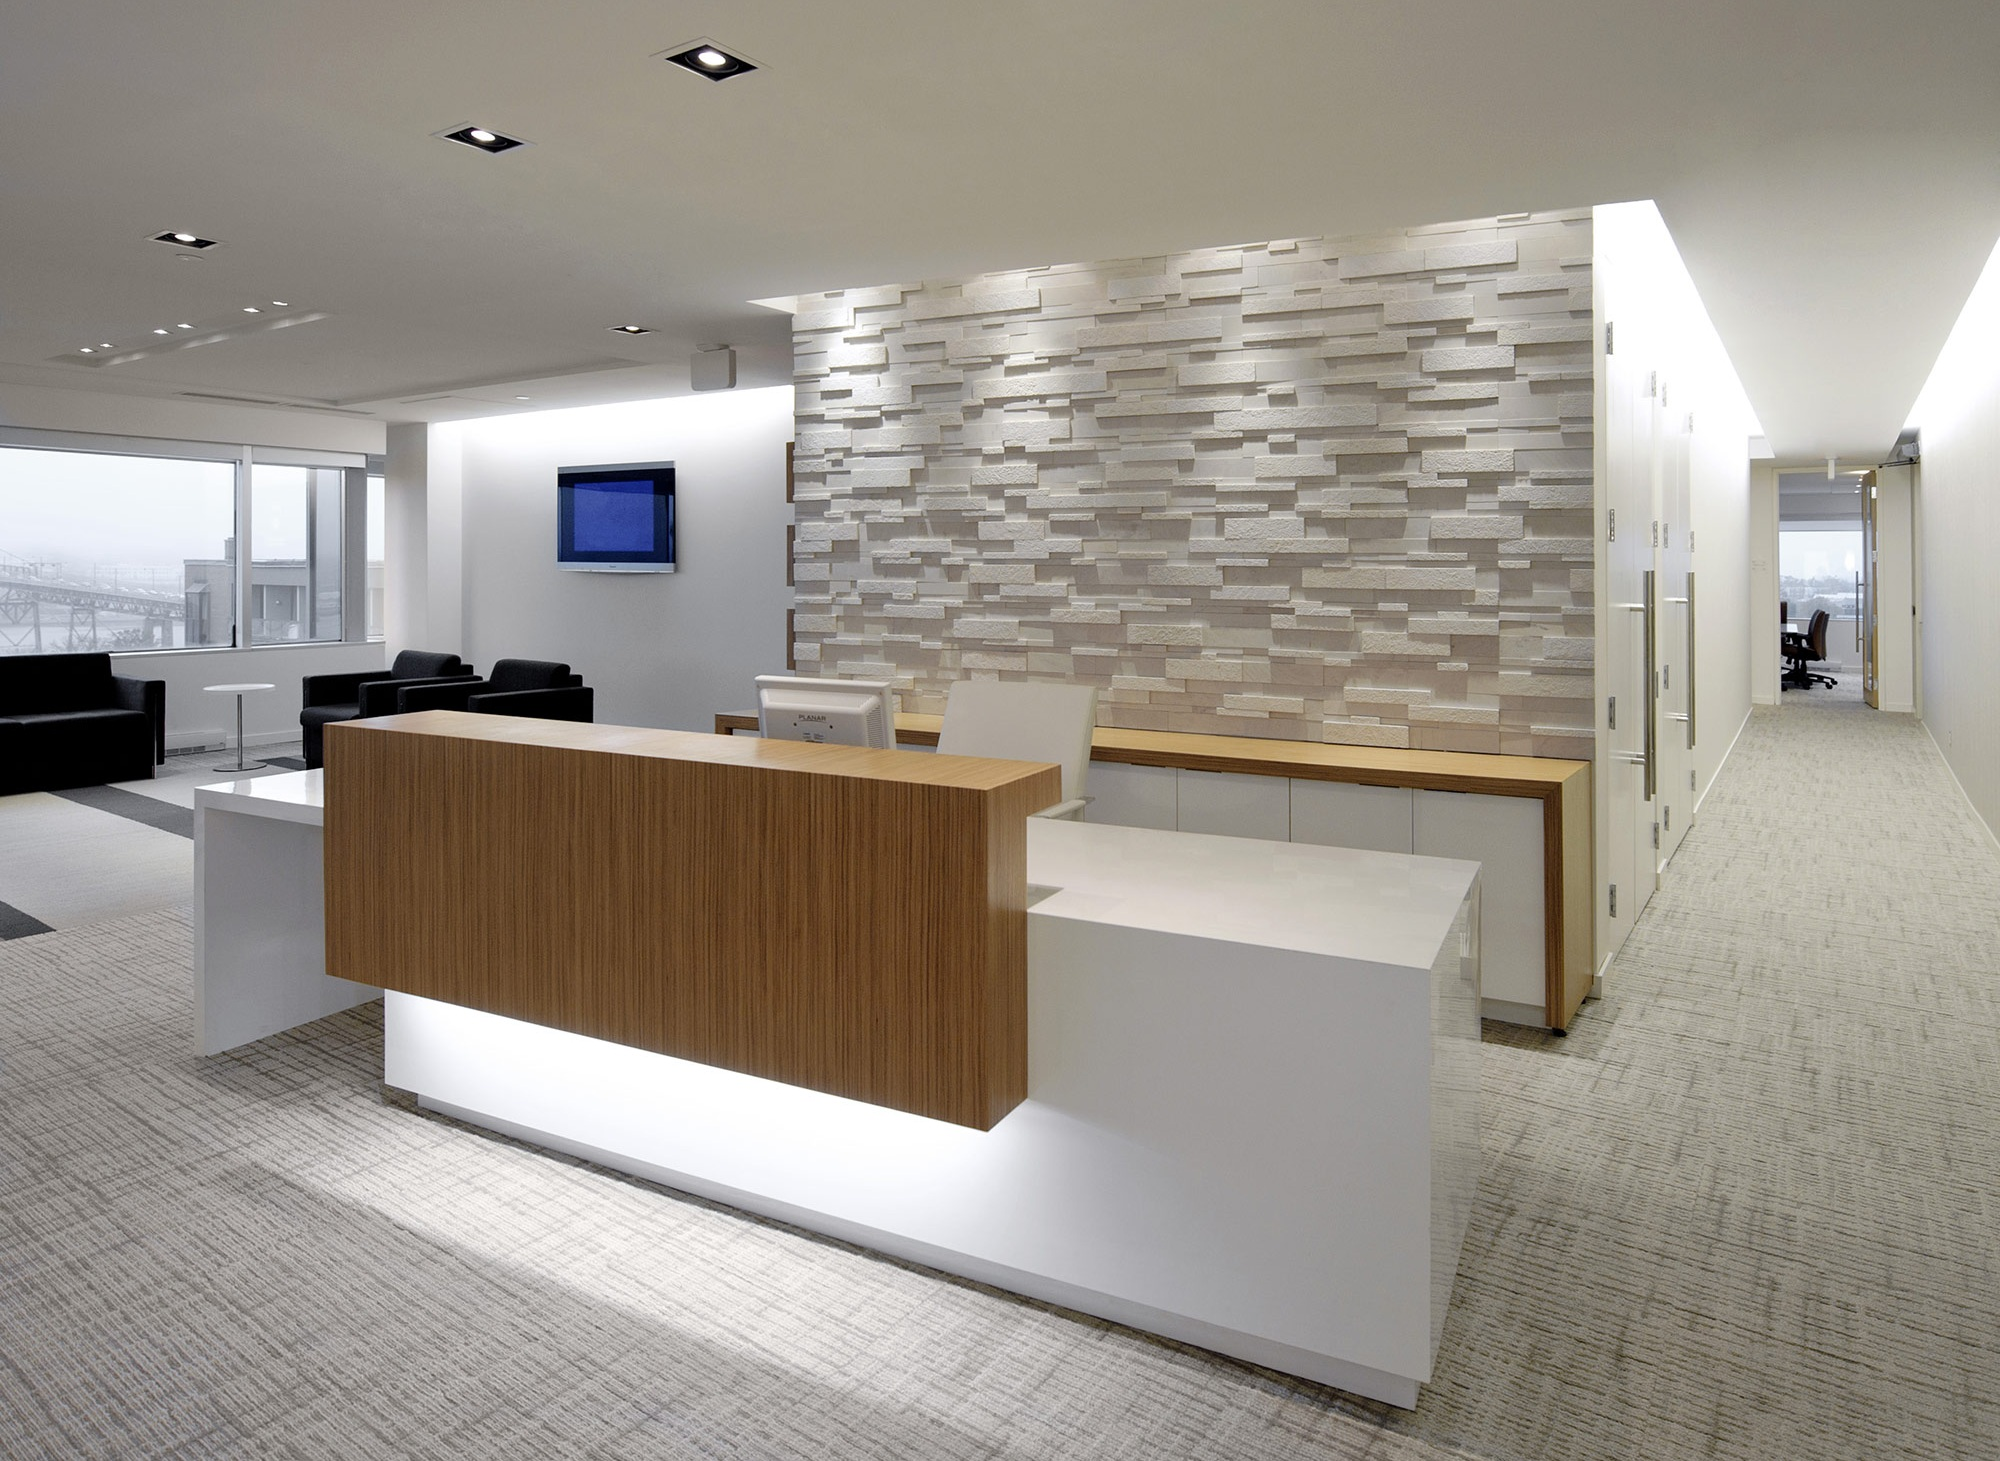 interior-design-legal-office-front-desk.jpg